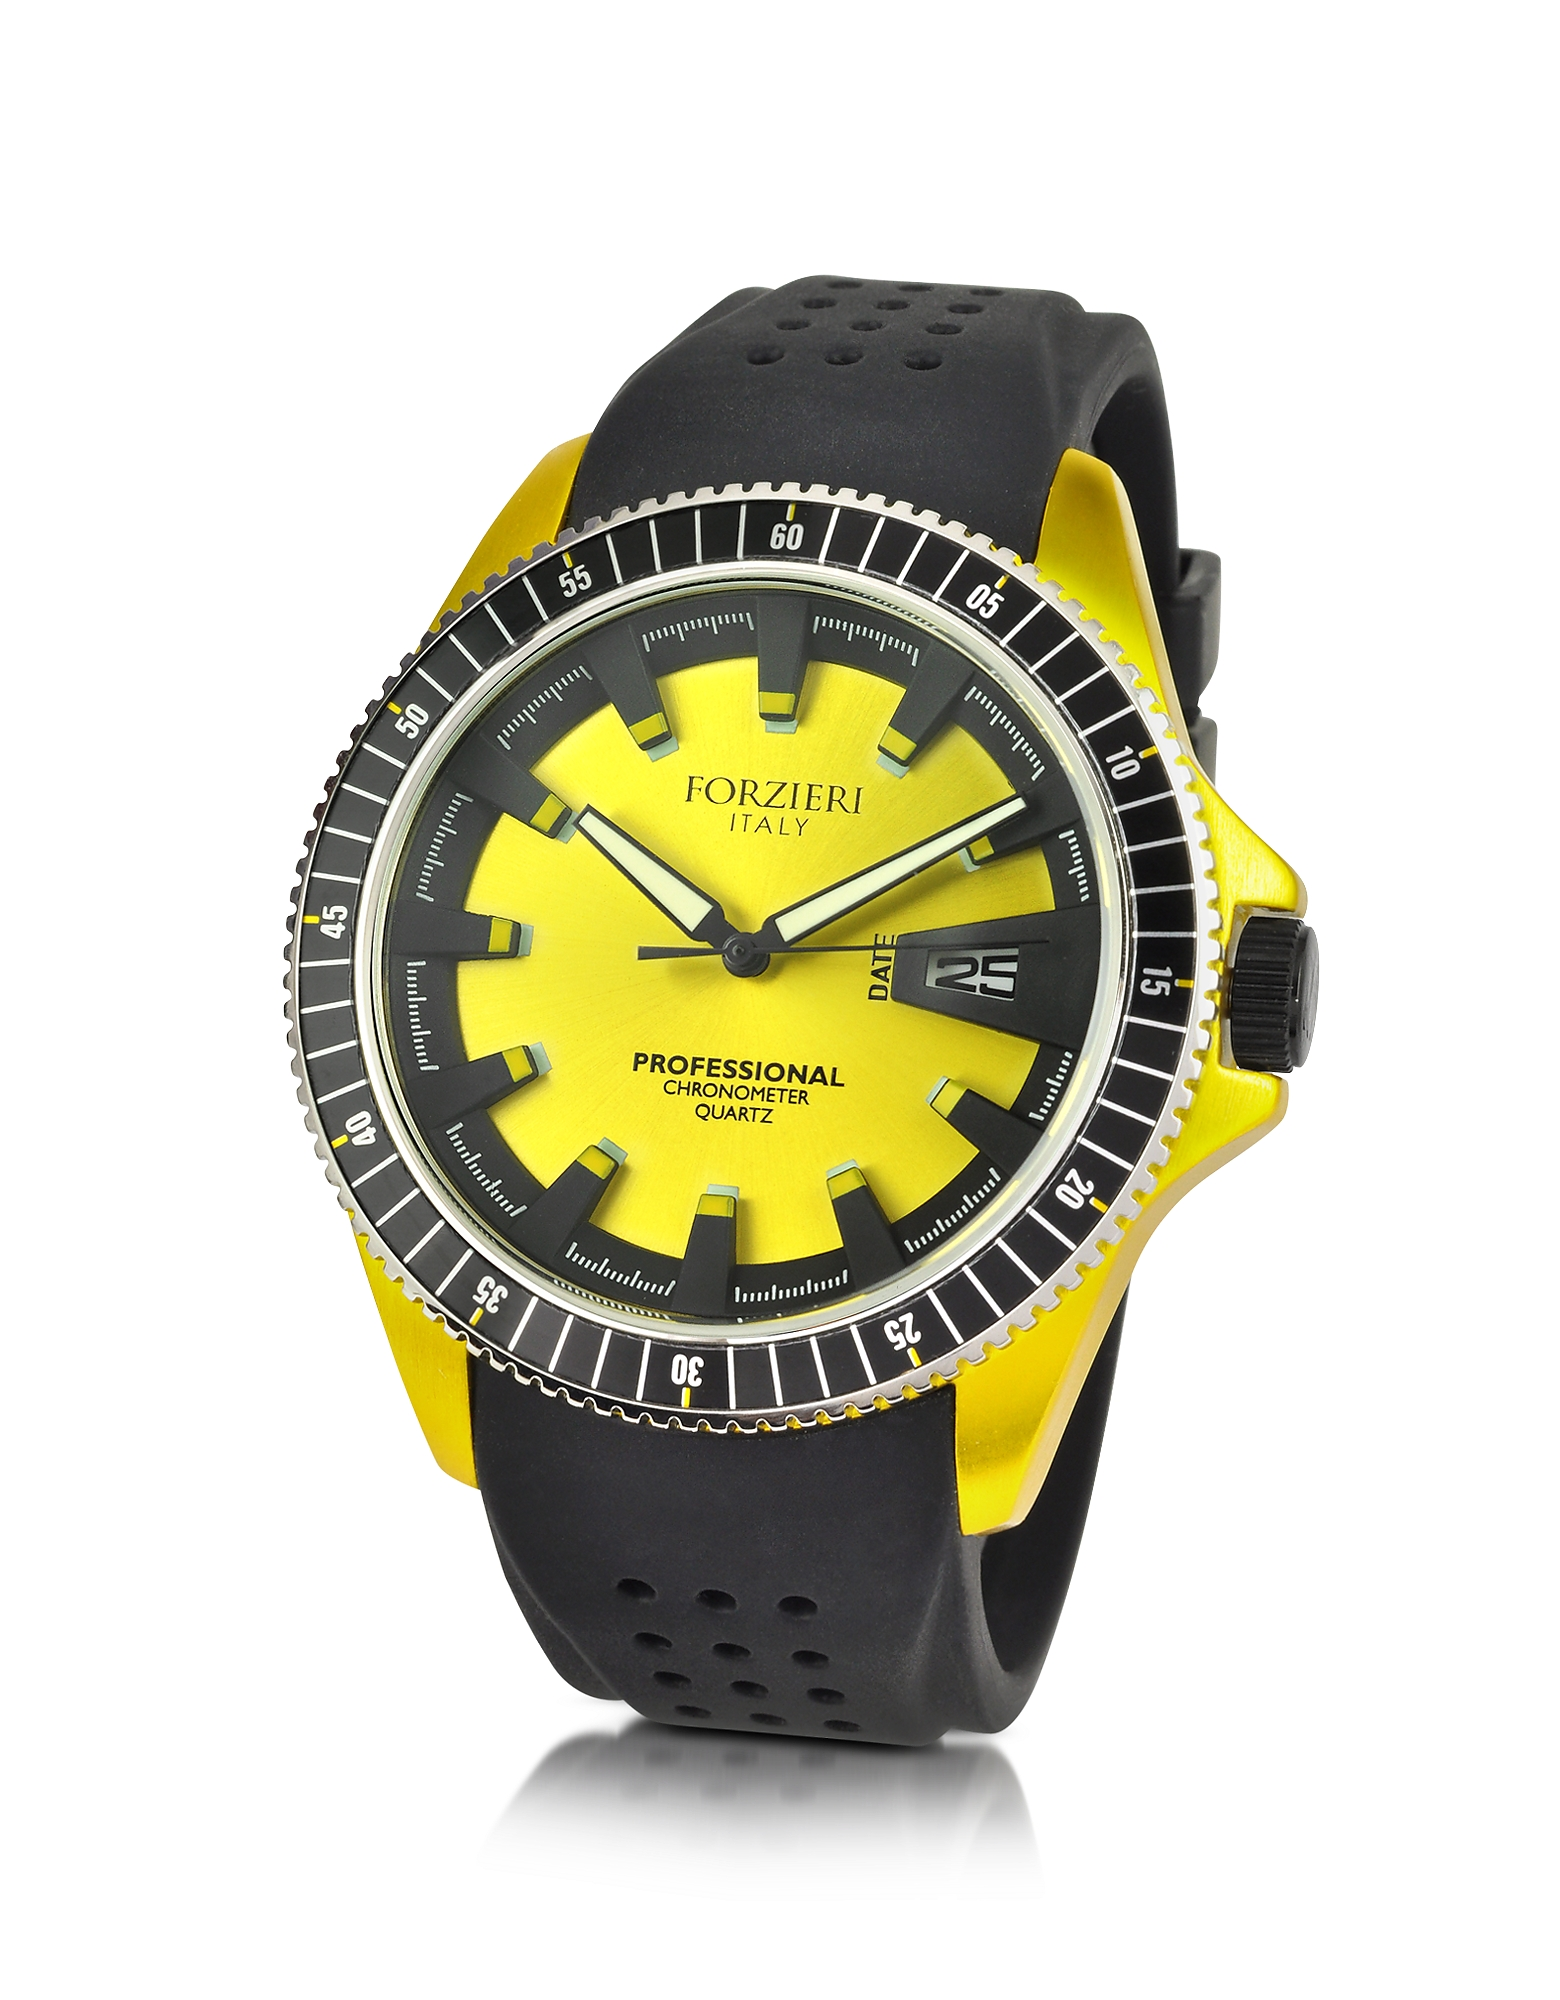 Forzieri Men's Watches, Yellow Aluminum Case Watch w/Rubber Strap